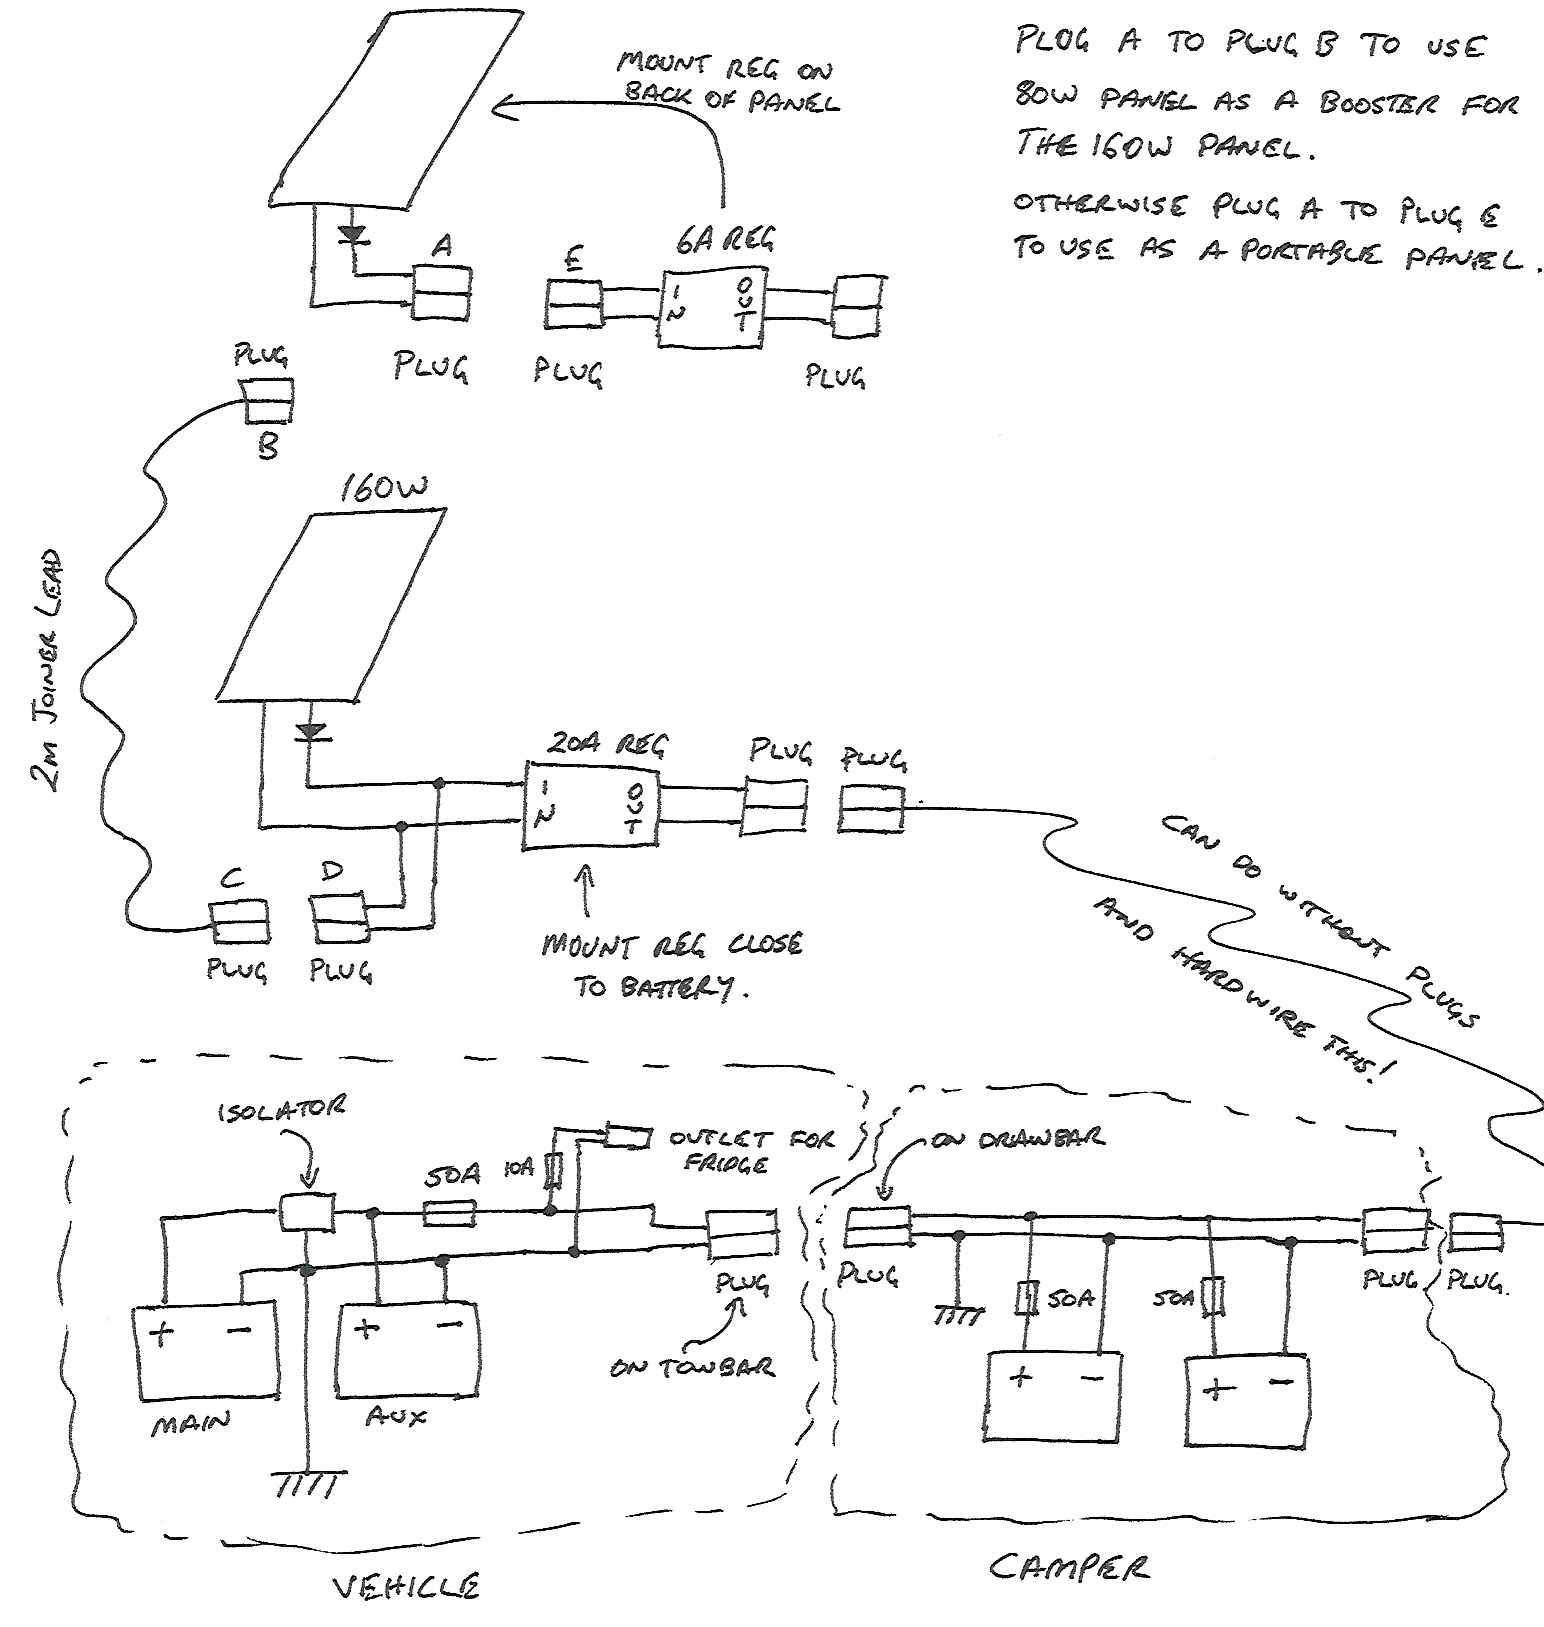 jayco caravan wiring diagram   28 wiring diagram images